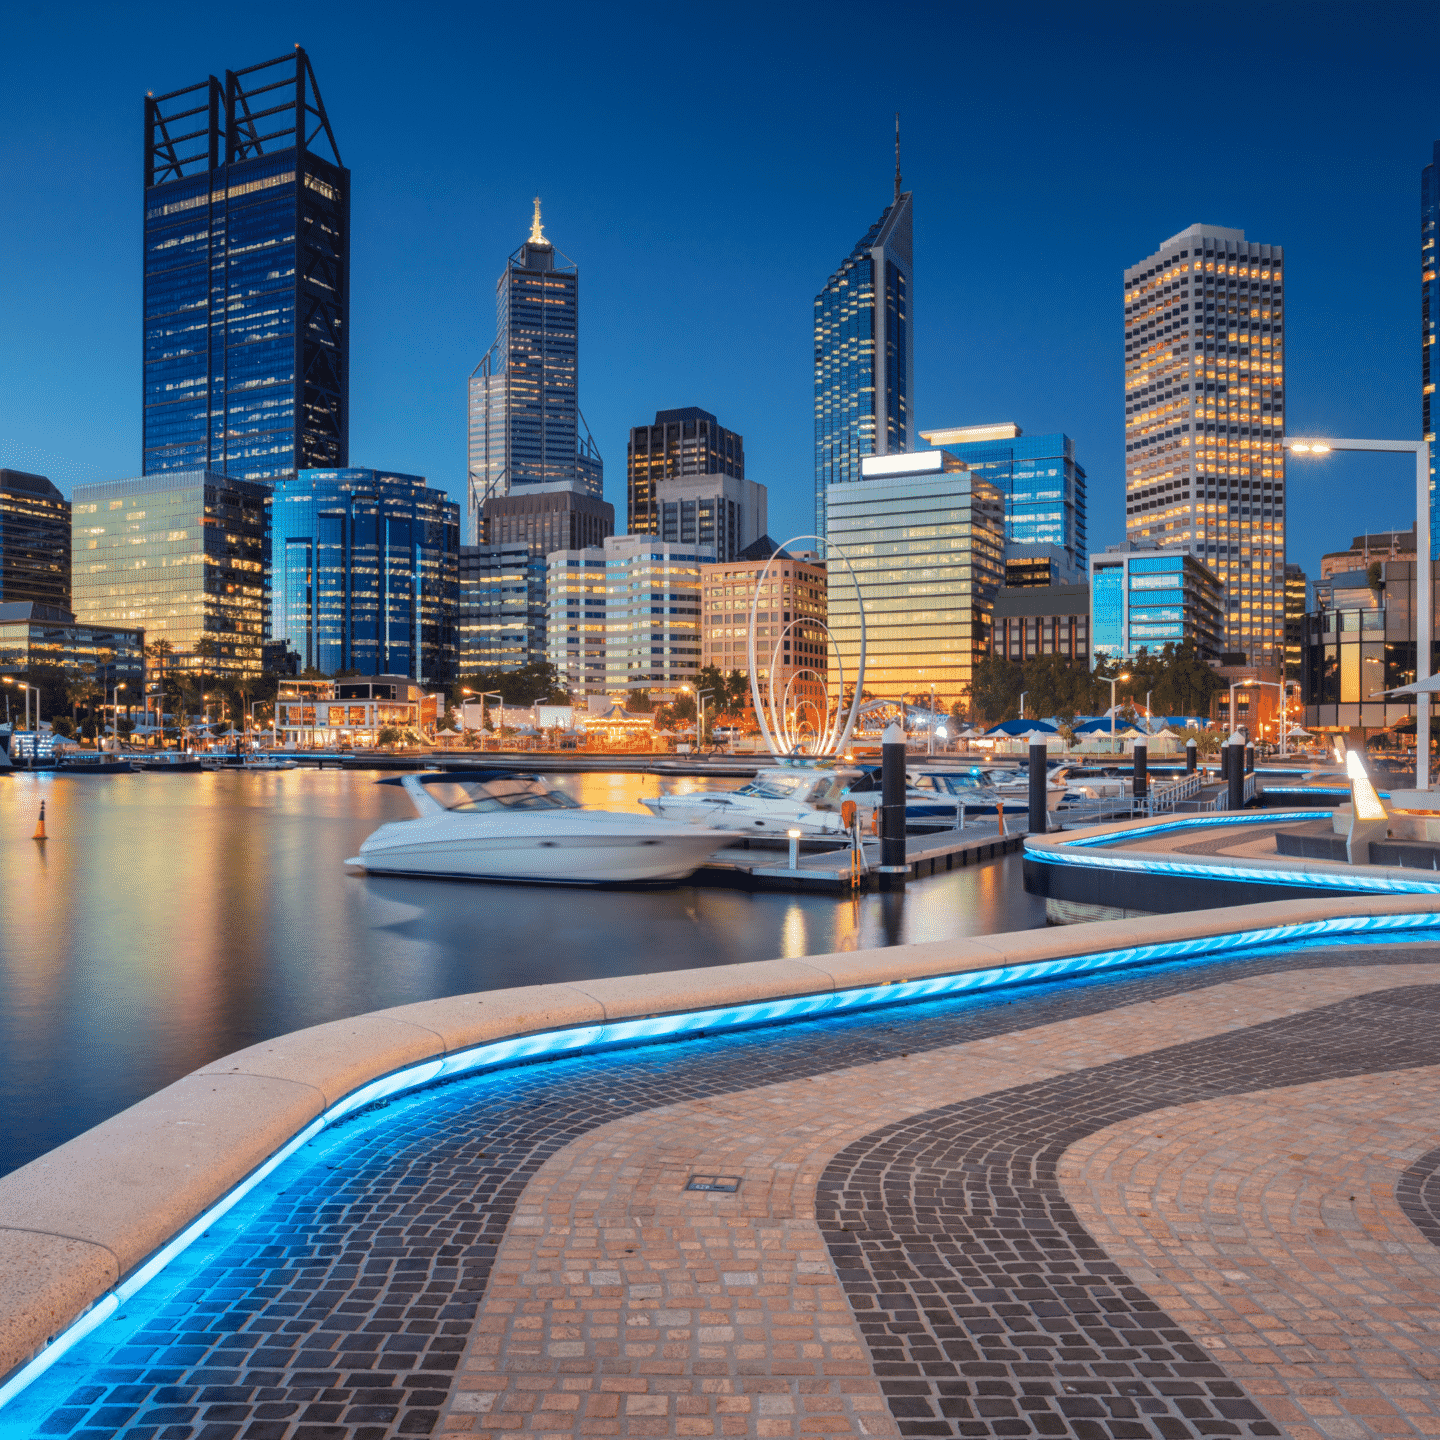 25 places to visit before turning 25   Perth, Australia